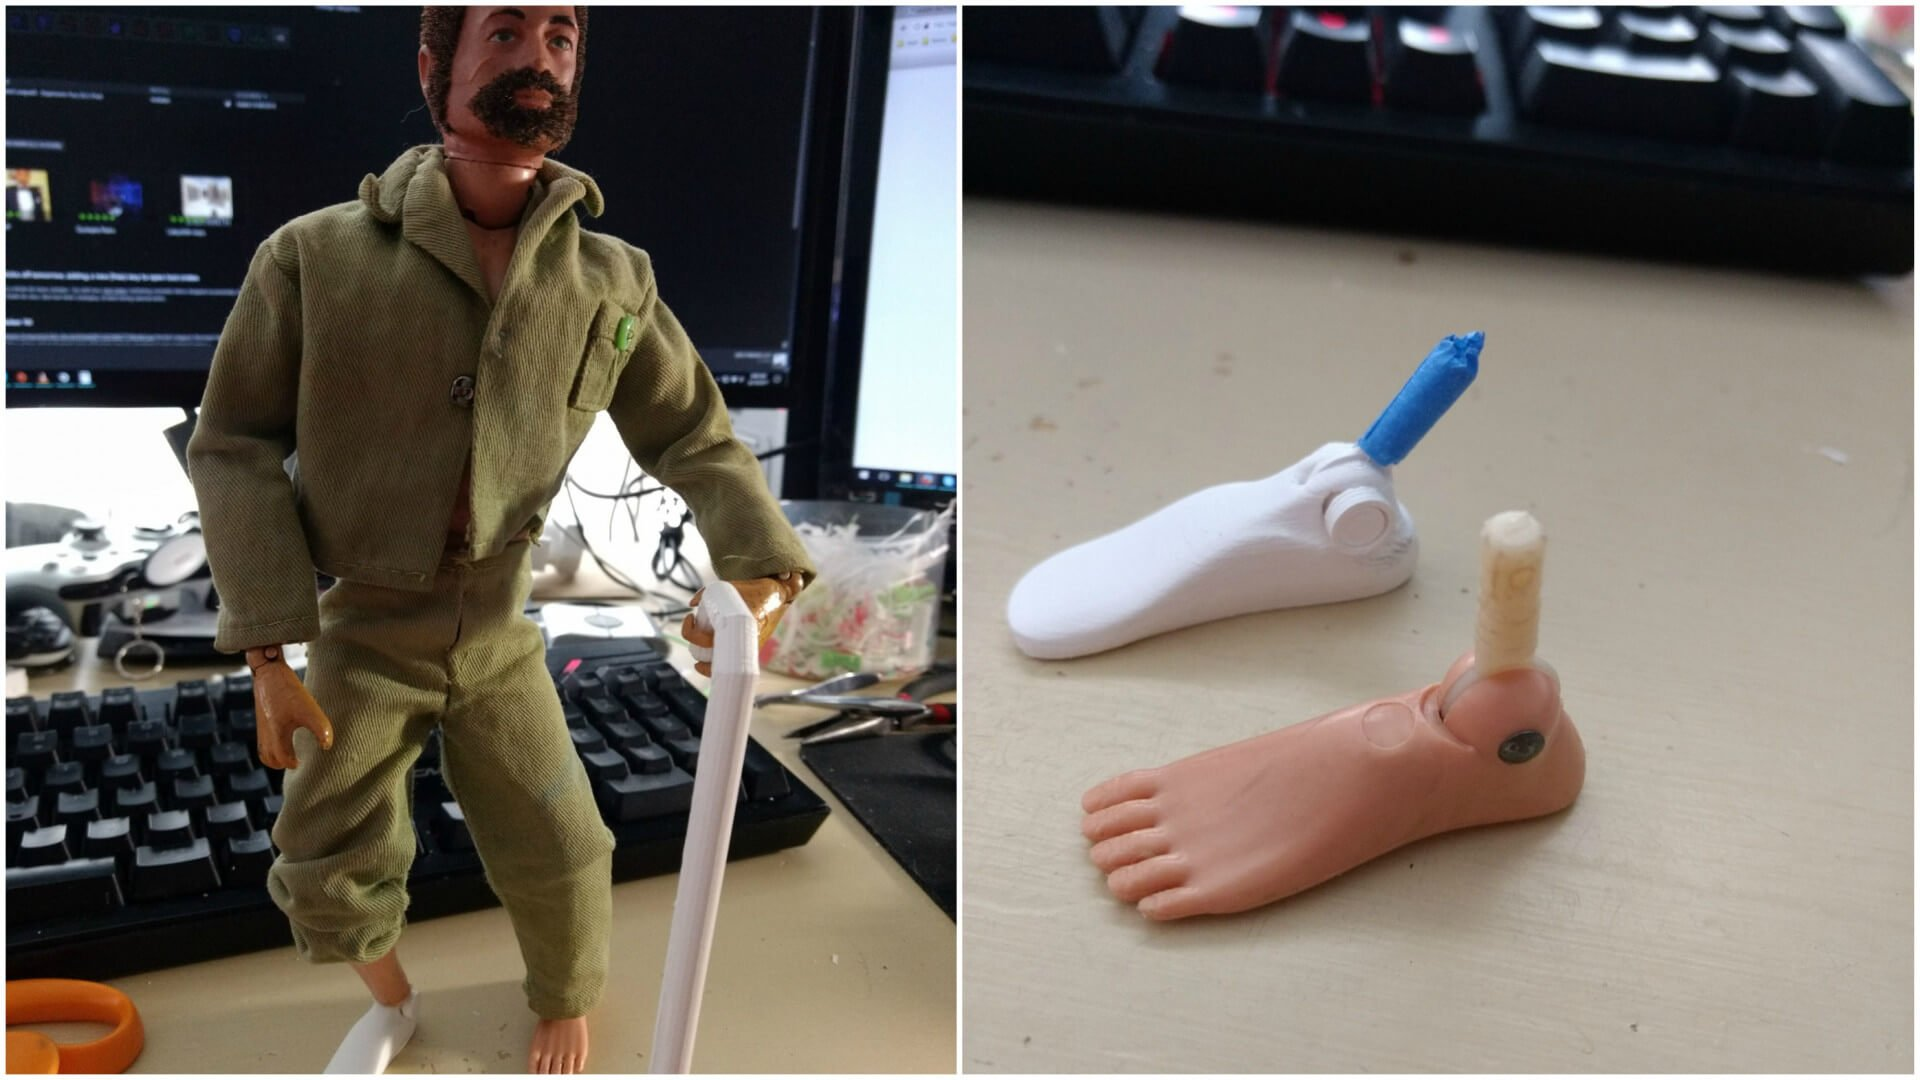 G.I. Joe Receives 3D Printed Prosthetic Foot | All3DP